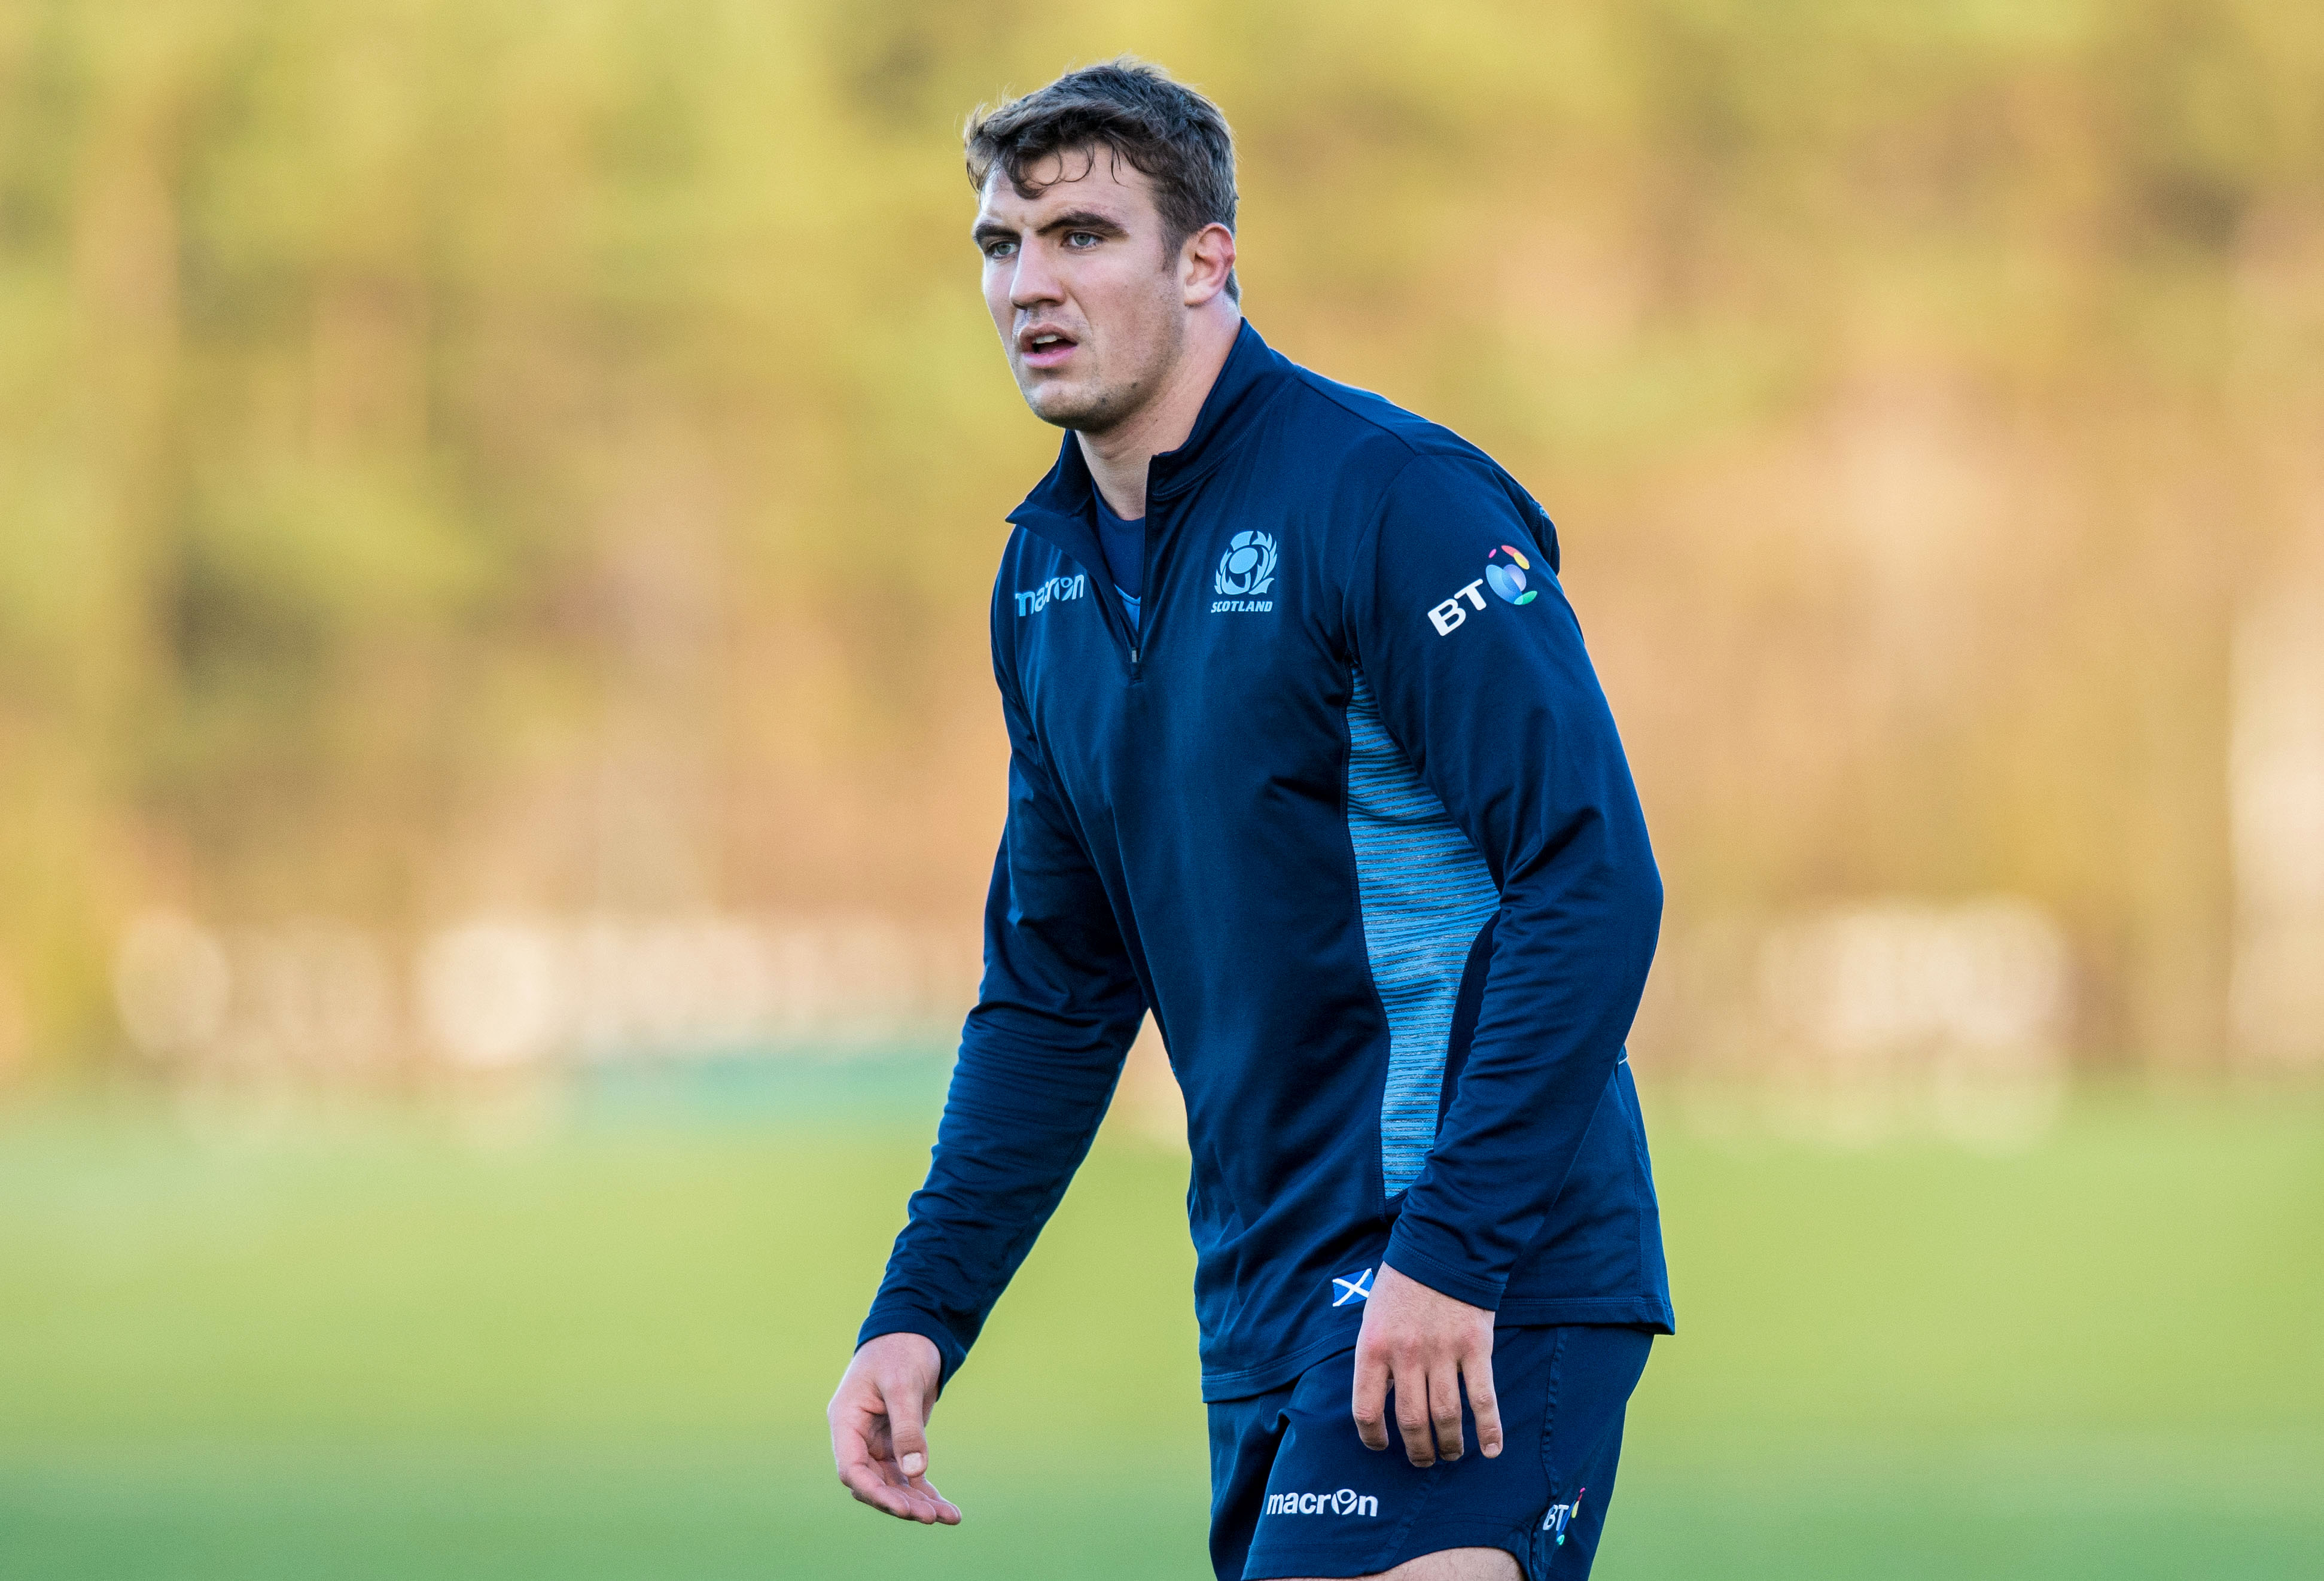 Sam Skinner will play in the second row for Scotland.